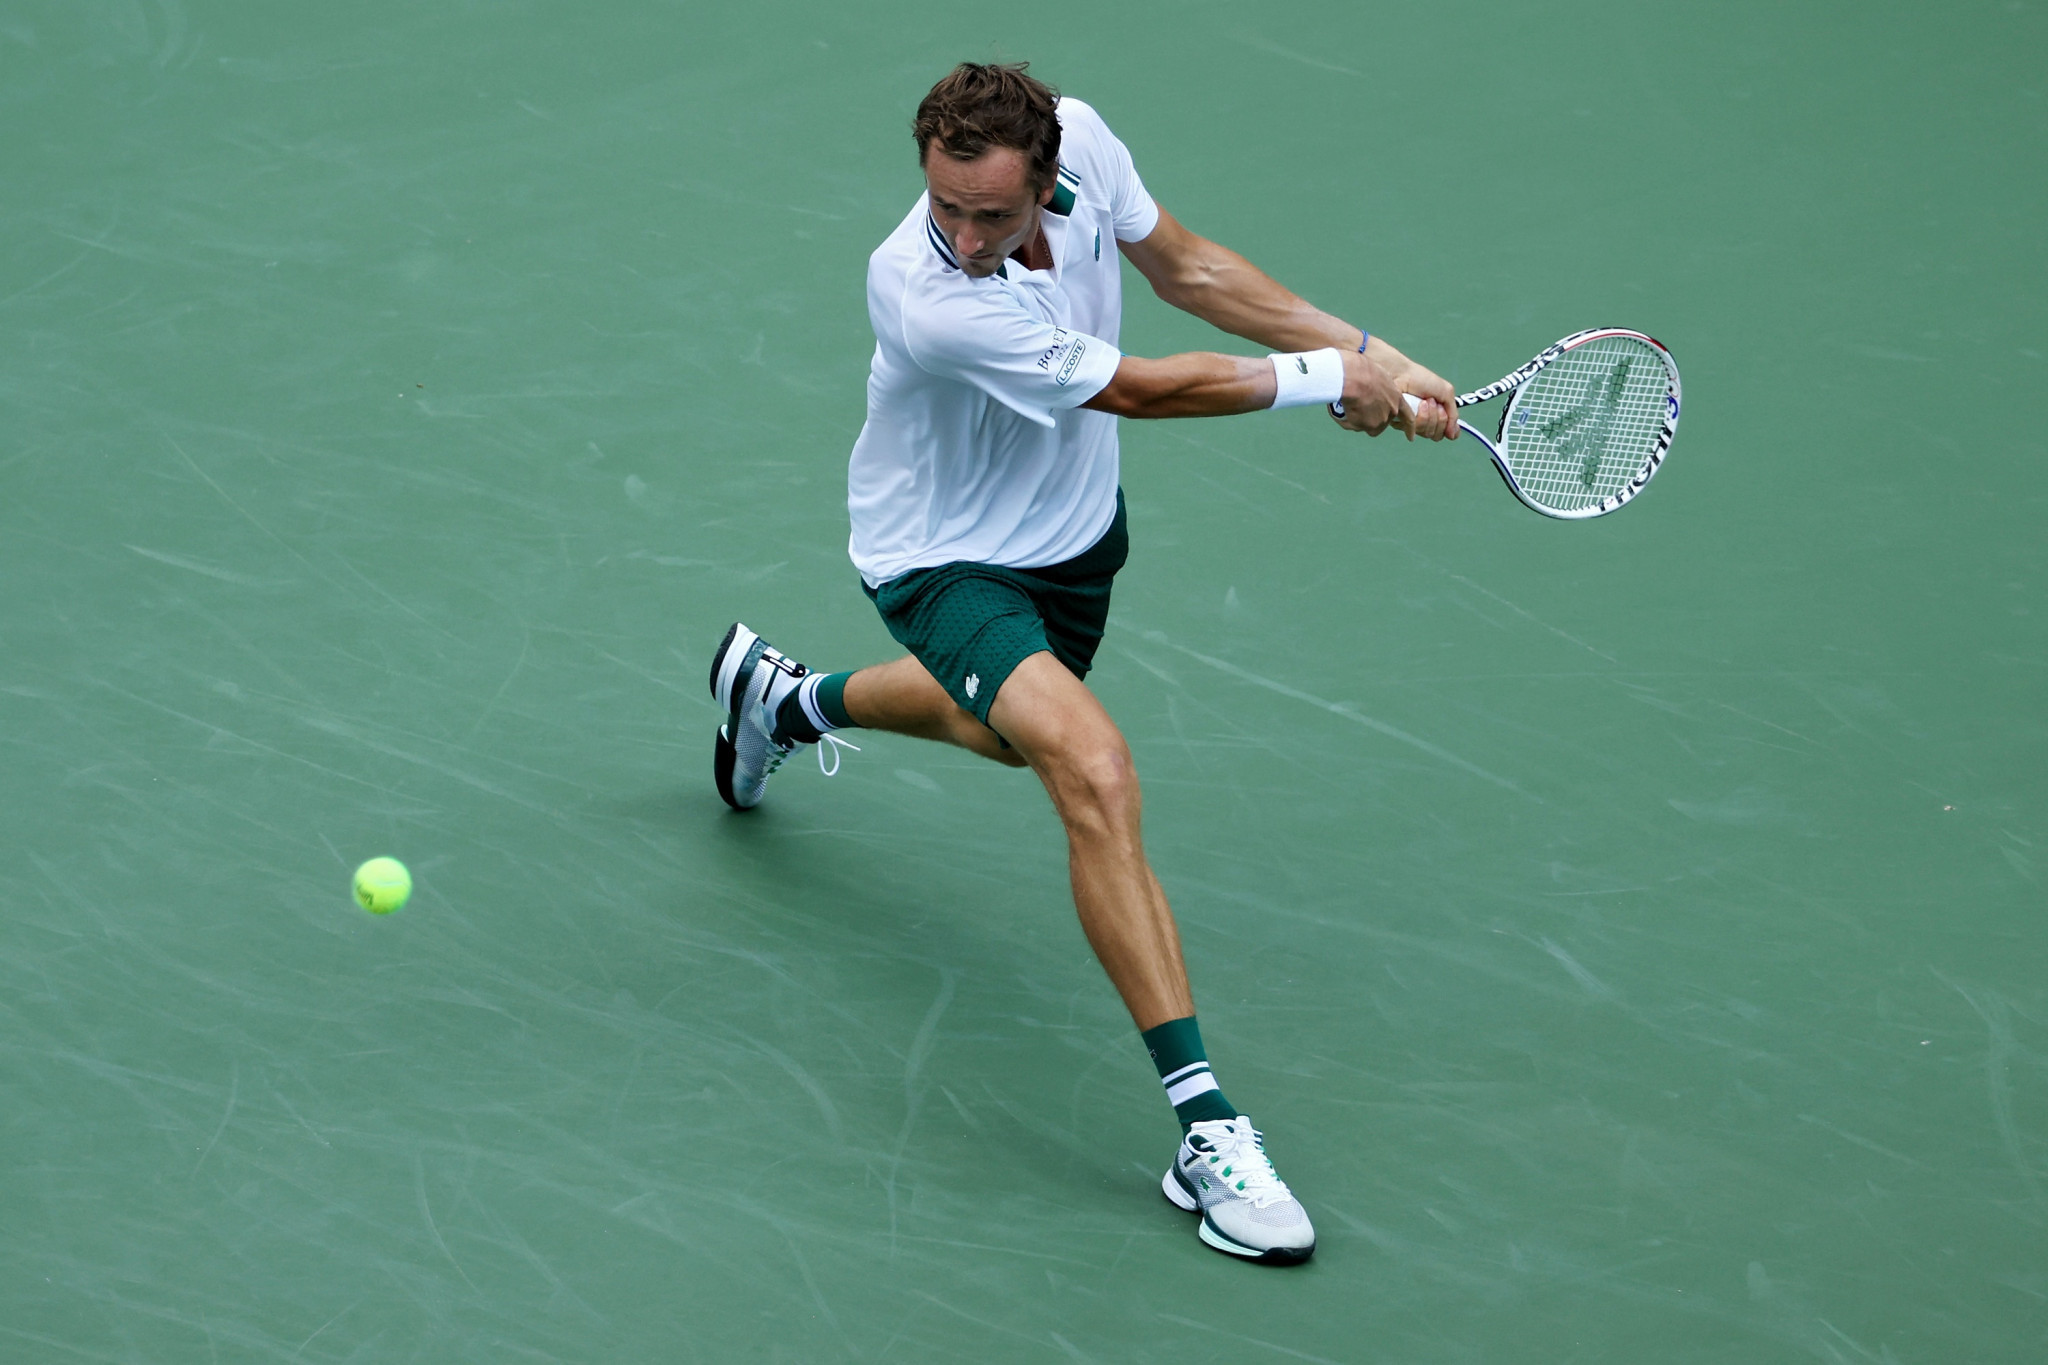 Canadian Open champion Daniil Medvedev cruised to victory against Mackenzie McDonald ©Getty Images